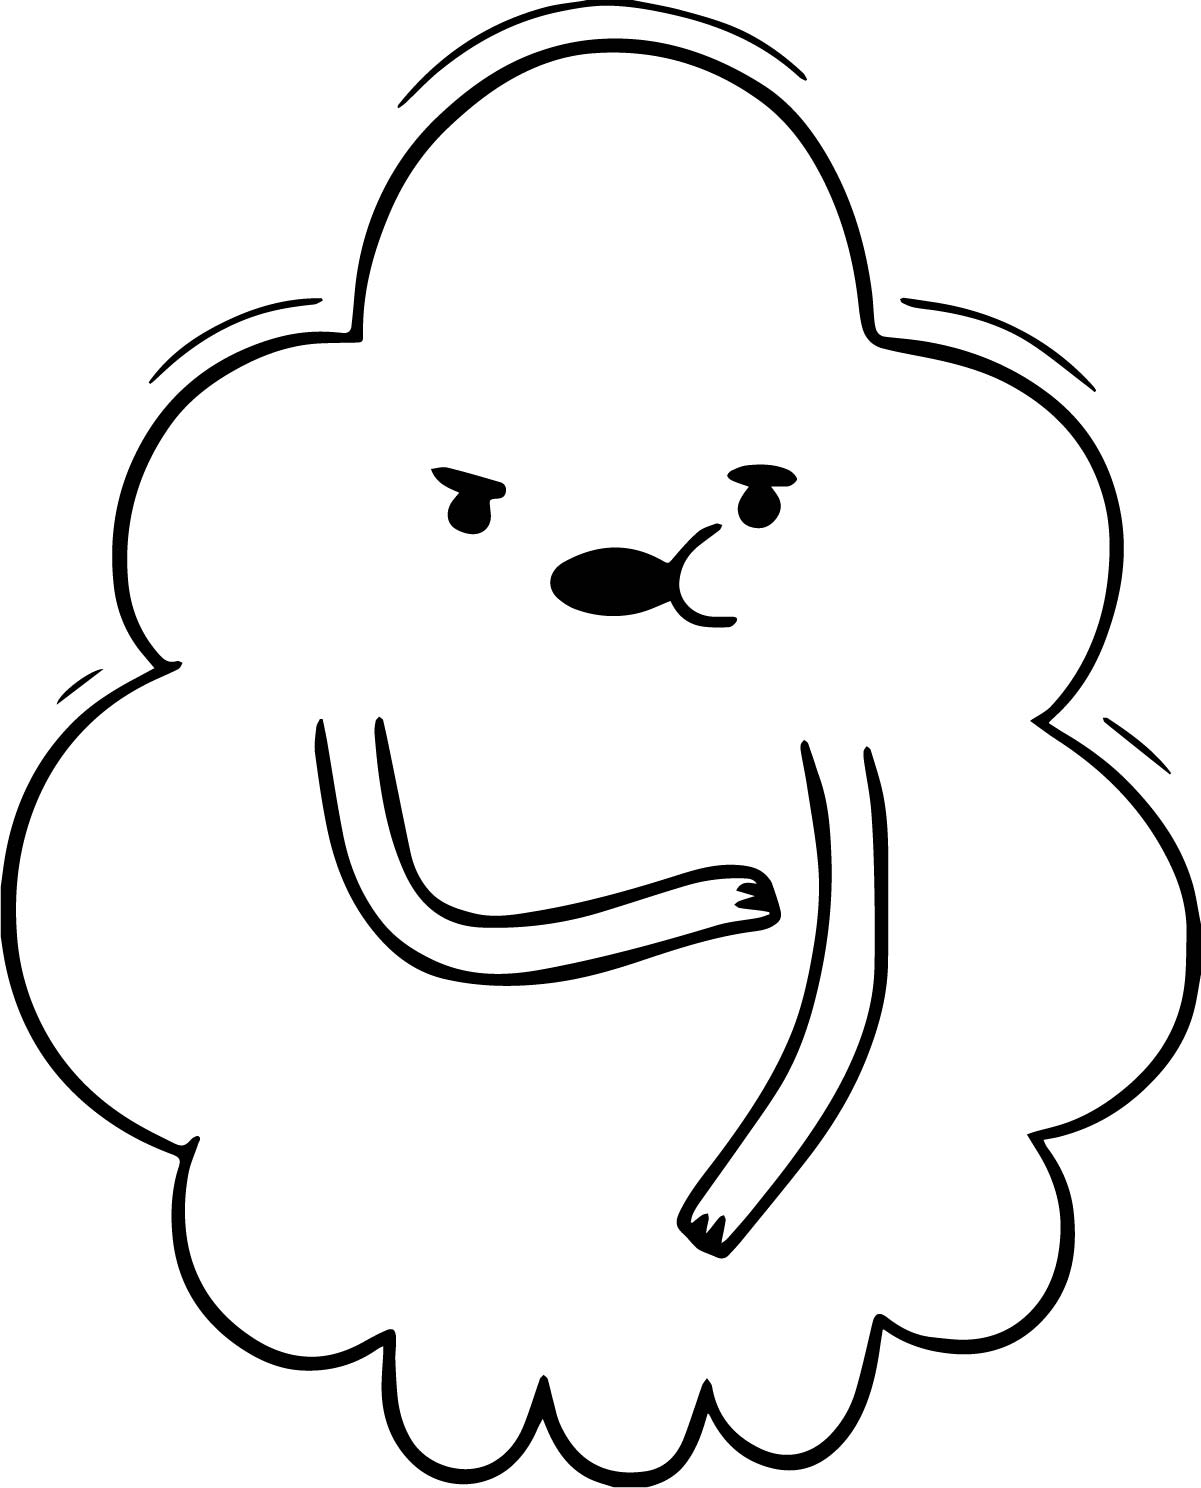 adventure time ghost princess coloring page wecoloringpage